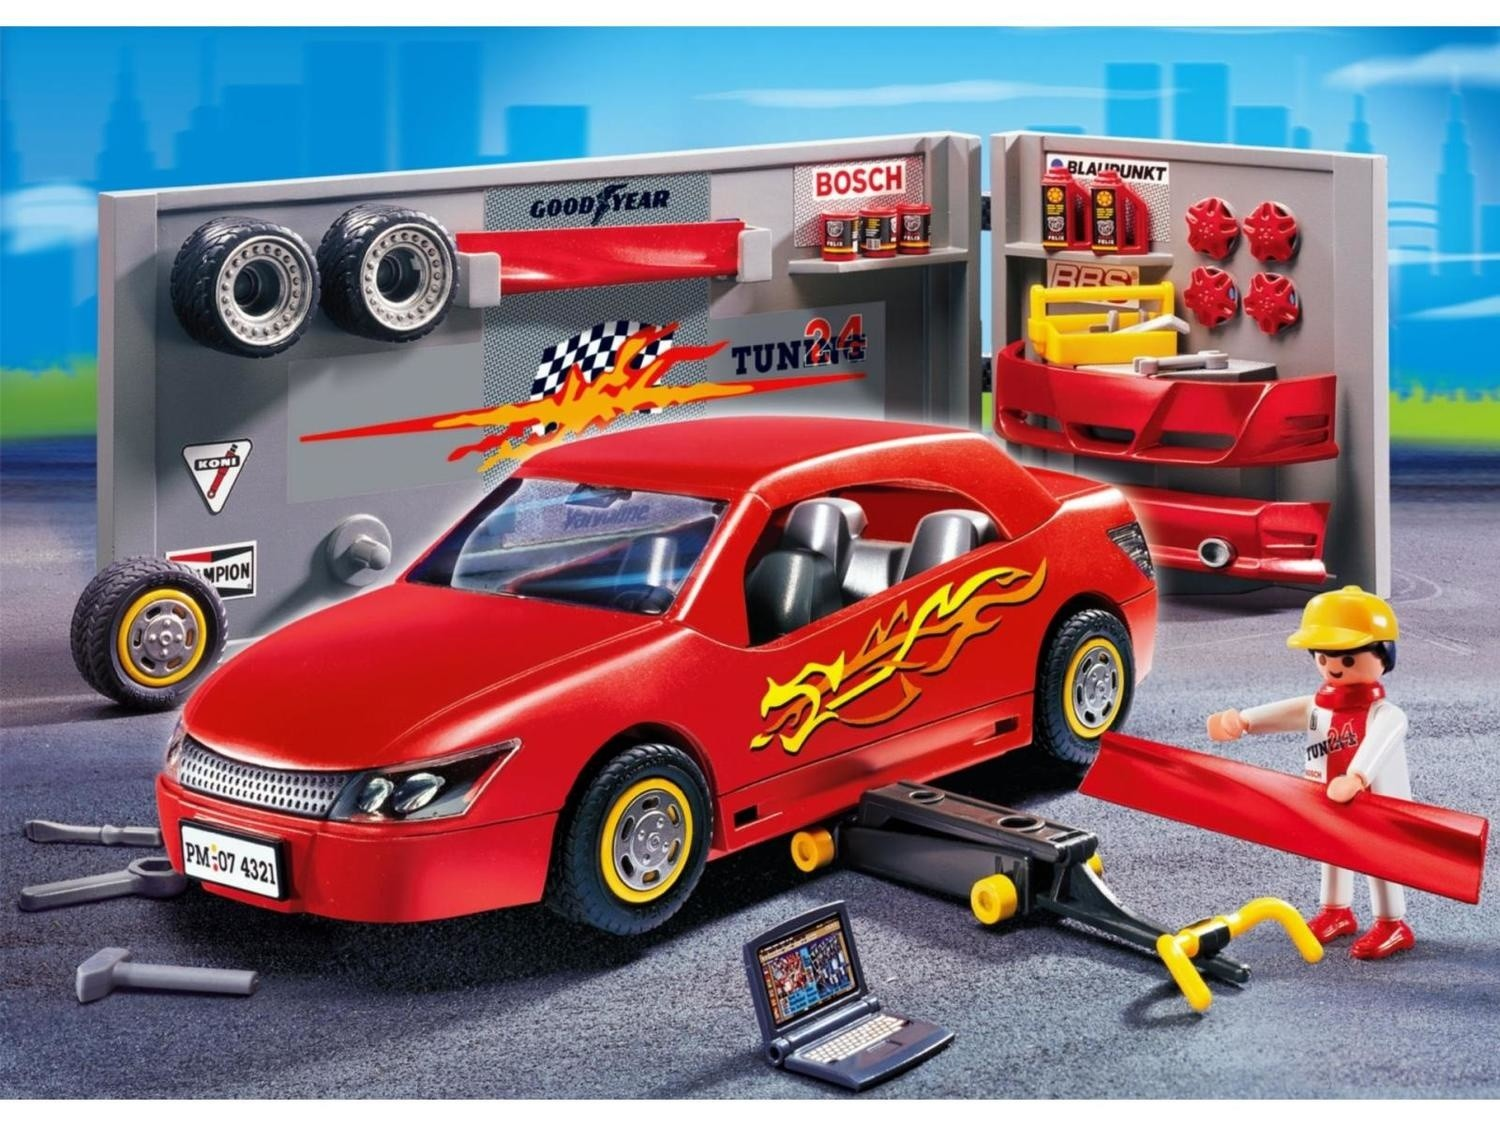 Tuning Avec Mécaniques Atelier Voiture Playmobil 4321 Sports N8y0mOvnw